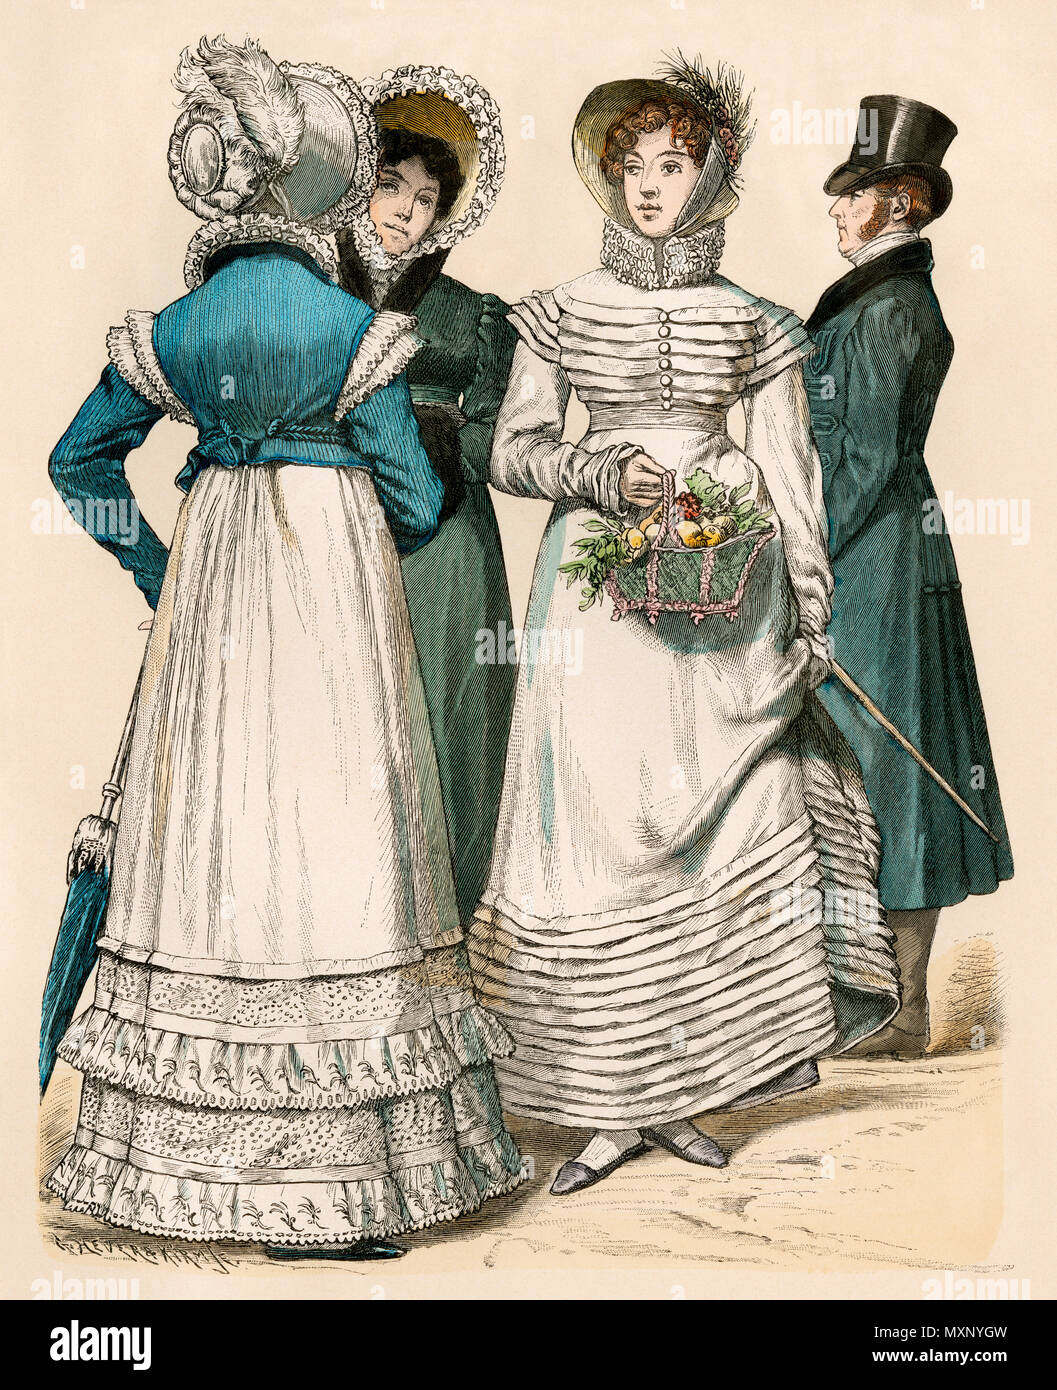 Fashionable European women about 1818. Hand-colored print - Stock Image